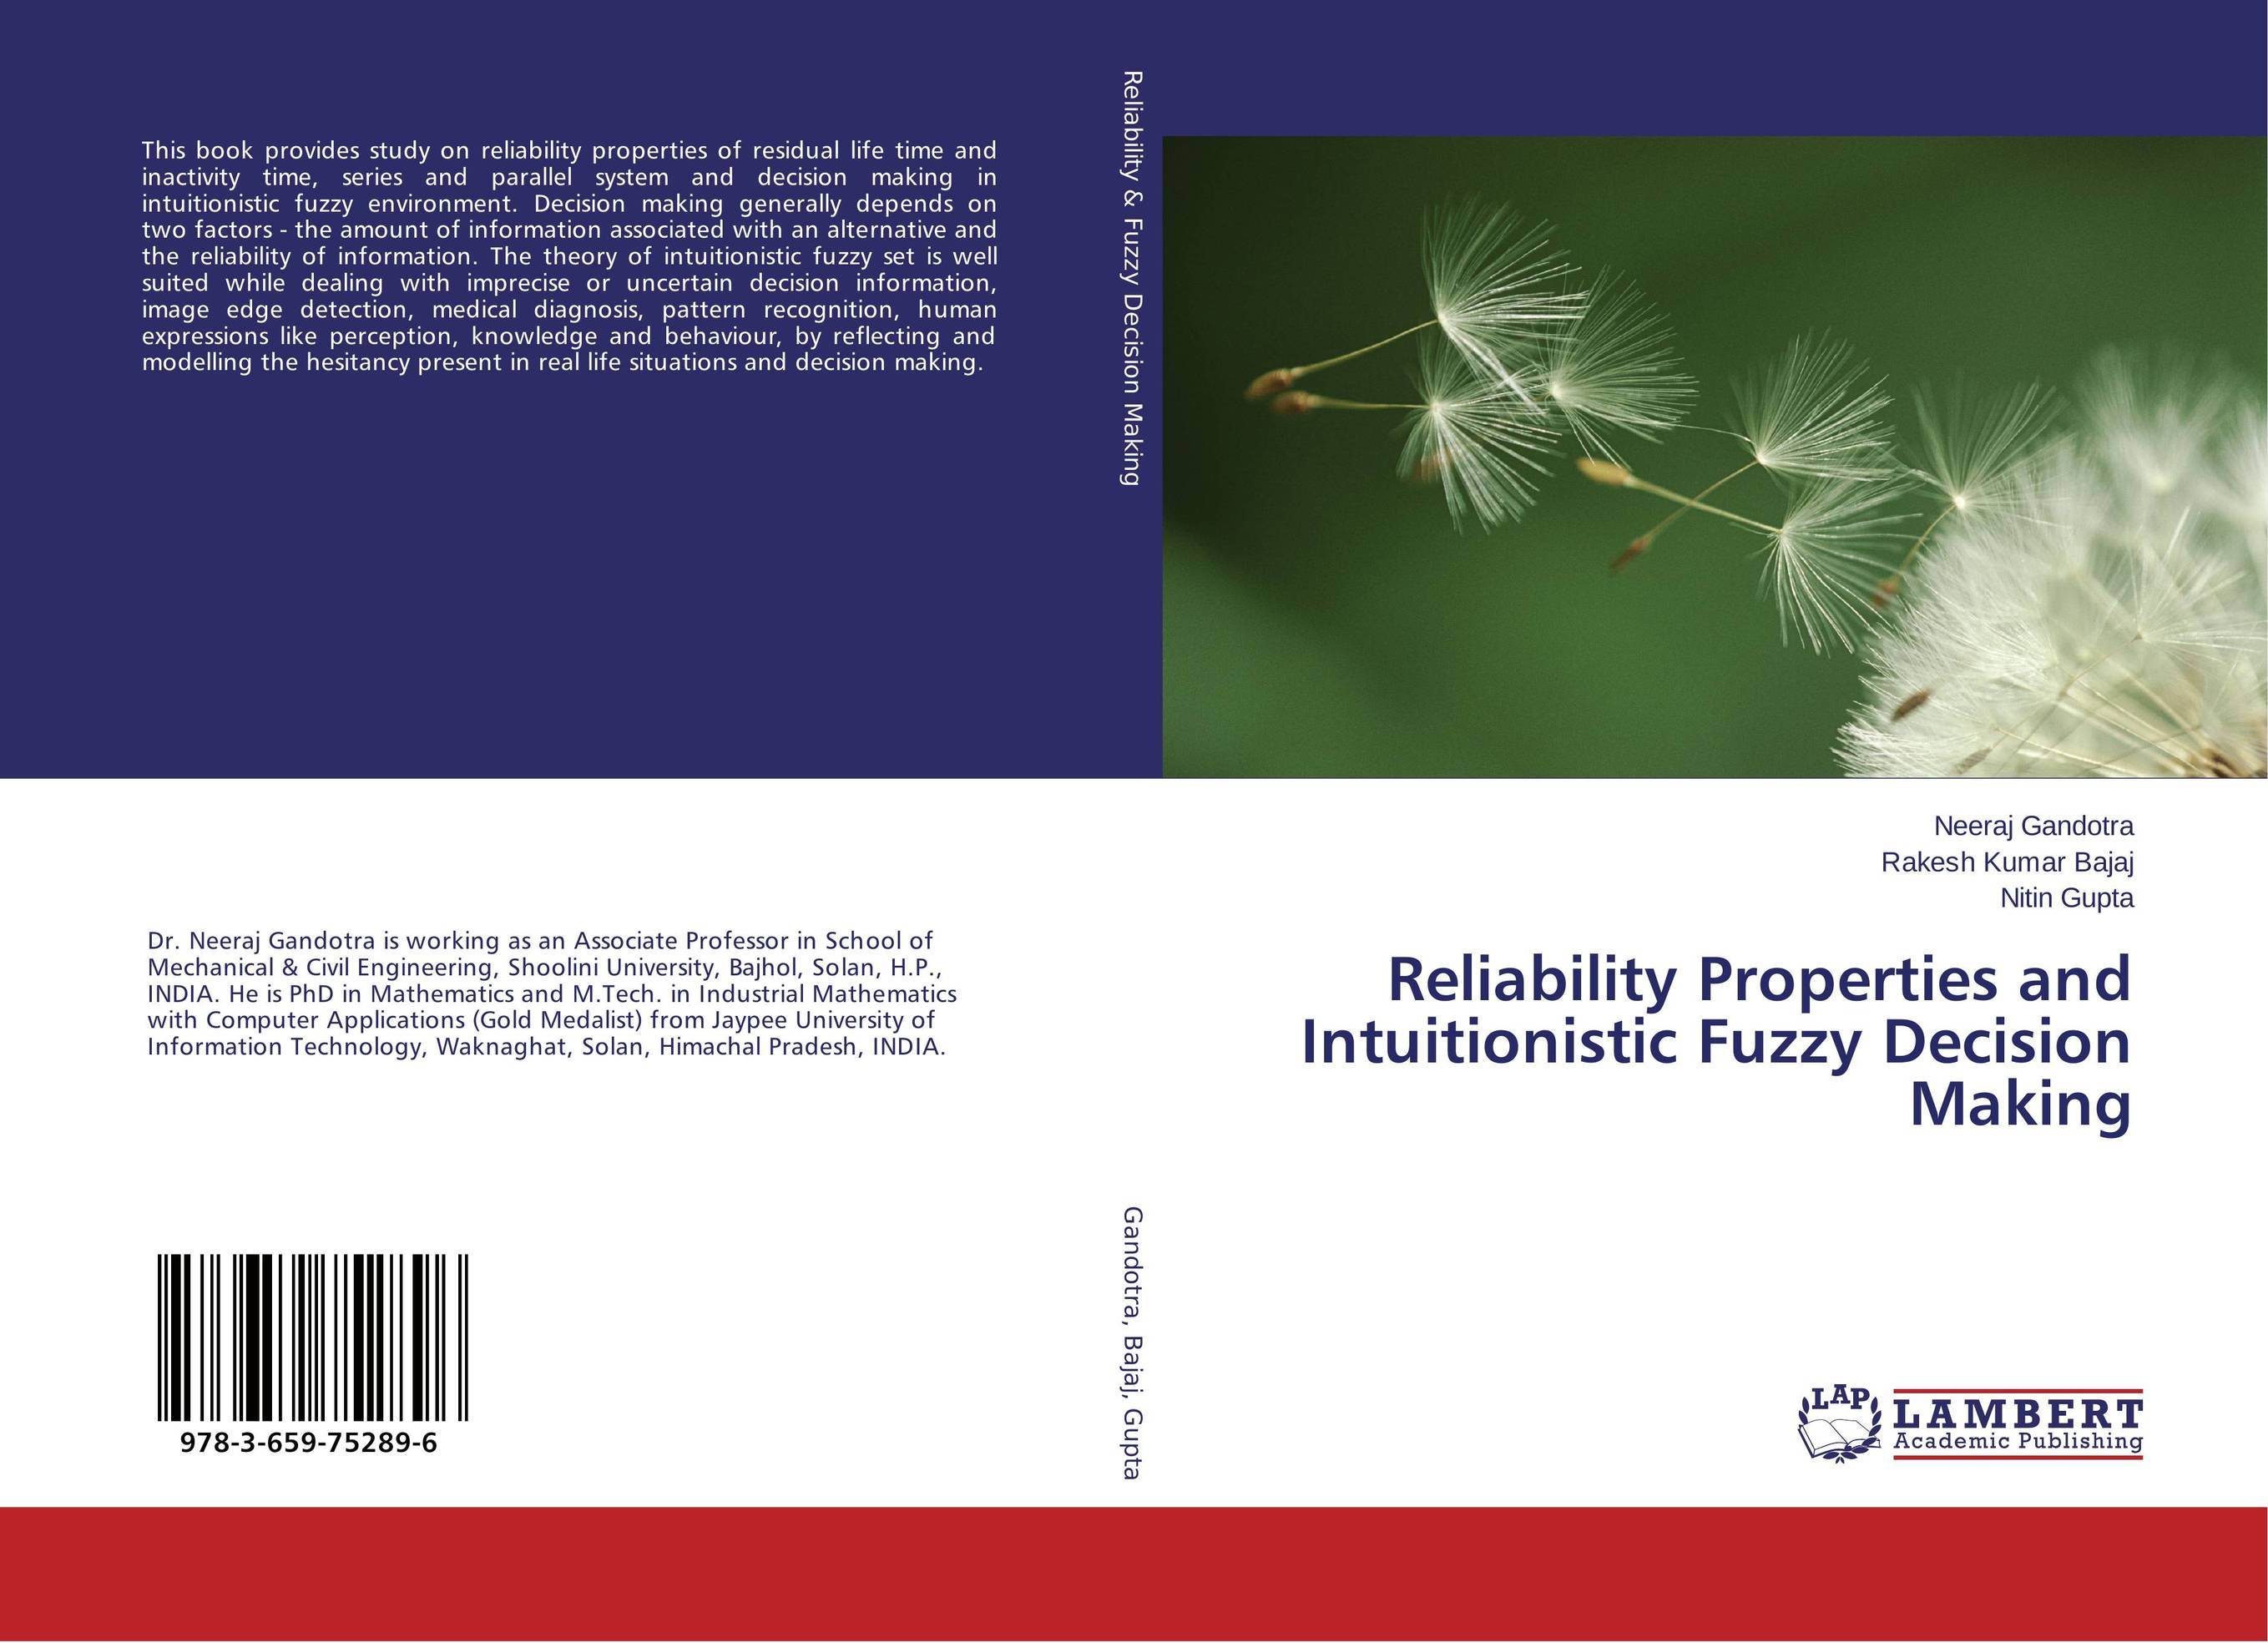 Reliability Properties and Intuitionistic Fuzzy Decision Making catalog 2003 information systems and decision sciences cat alog